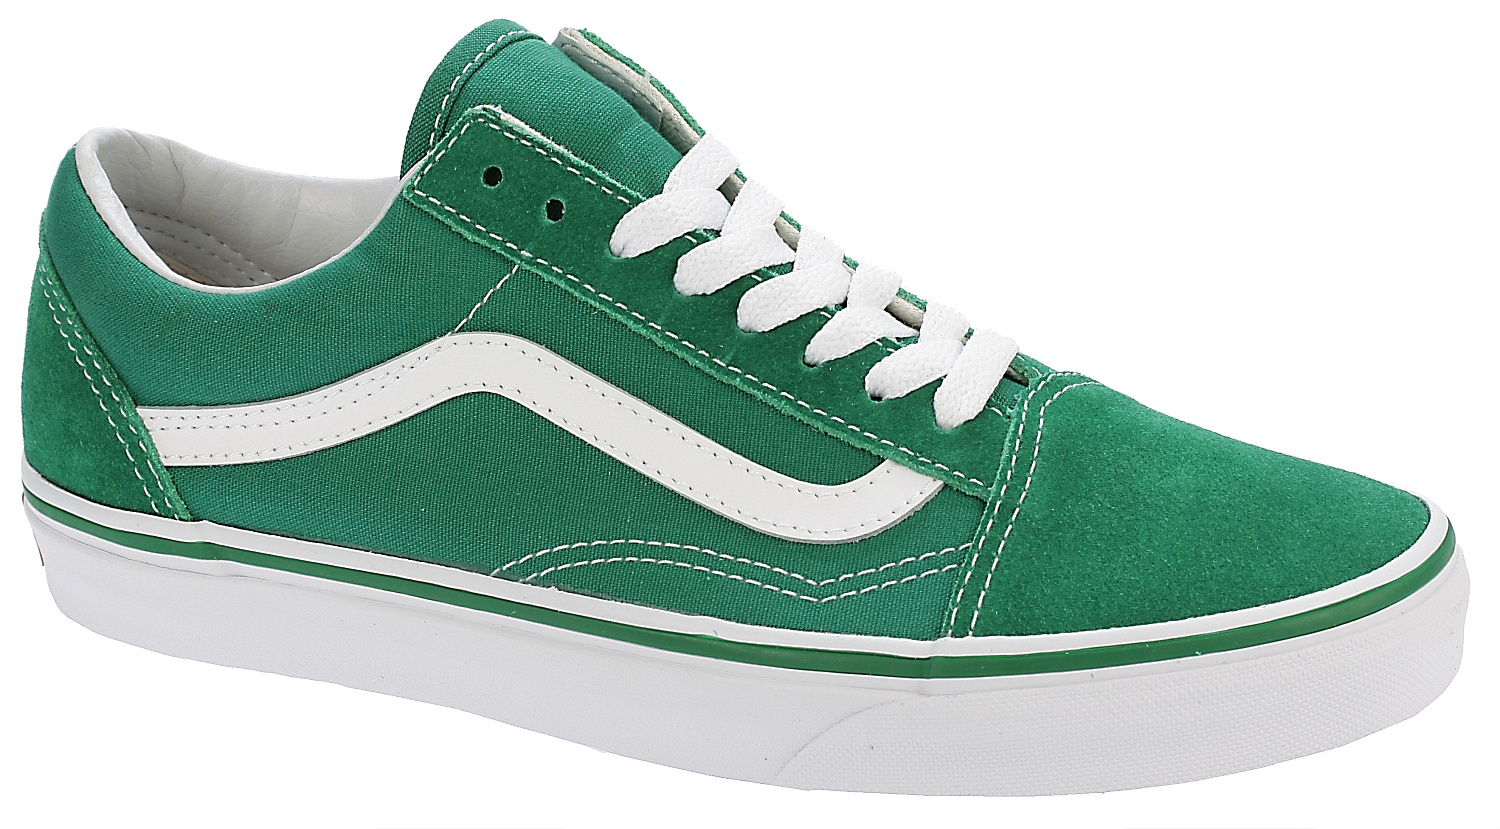 Greentrue Shoes Skool Old Vans White Suedecanvasultramarine QrxdCothBs